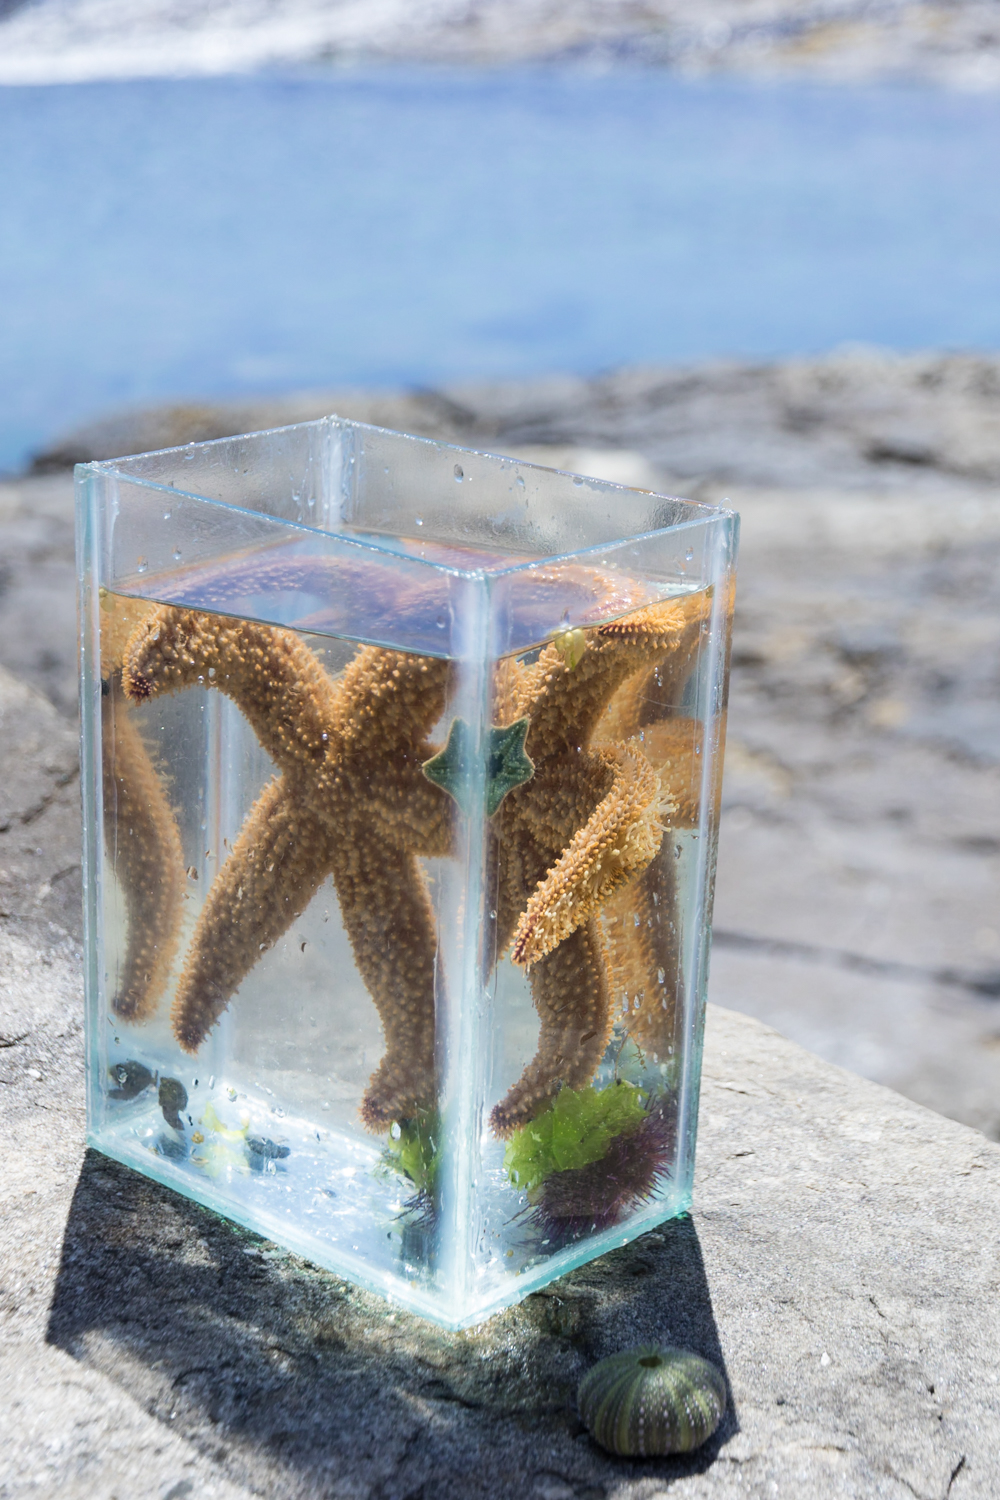 star fish in glass box